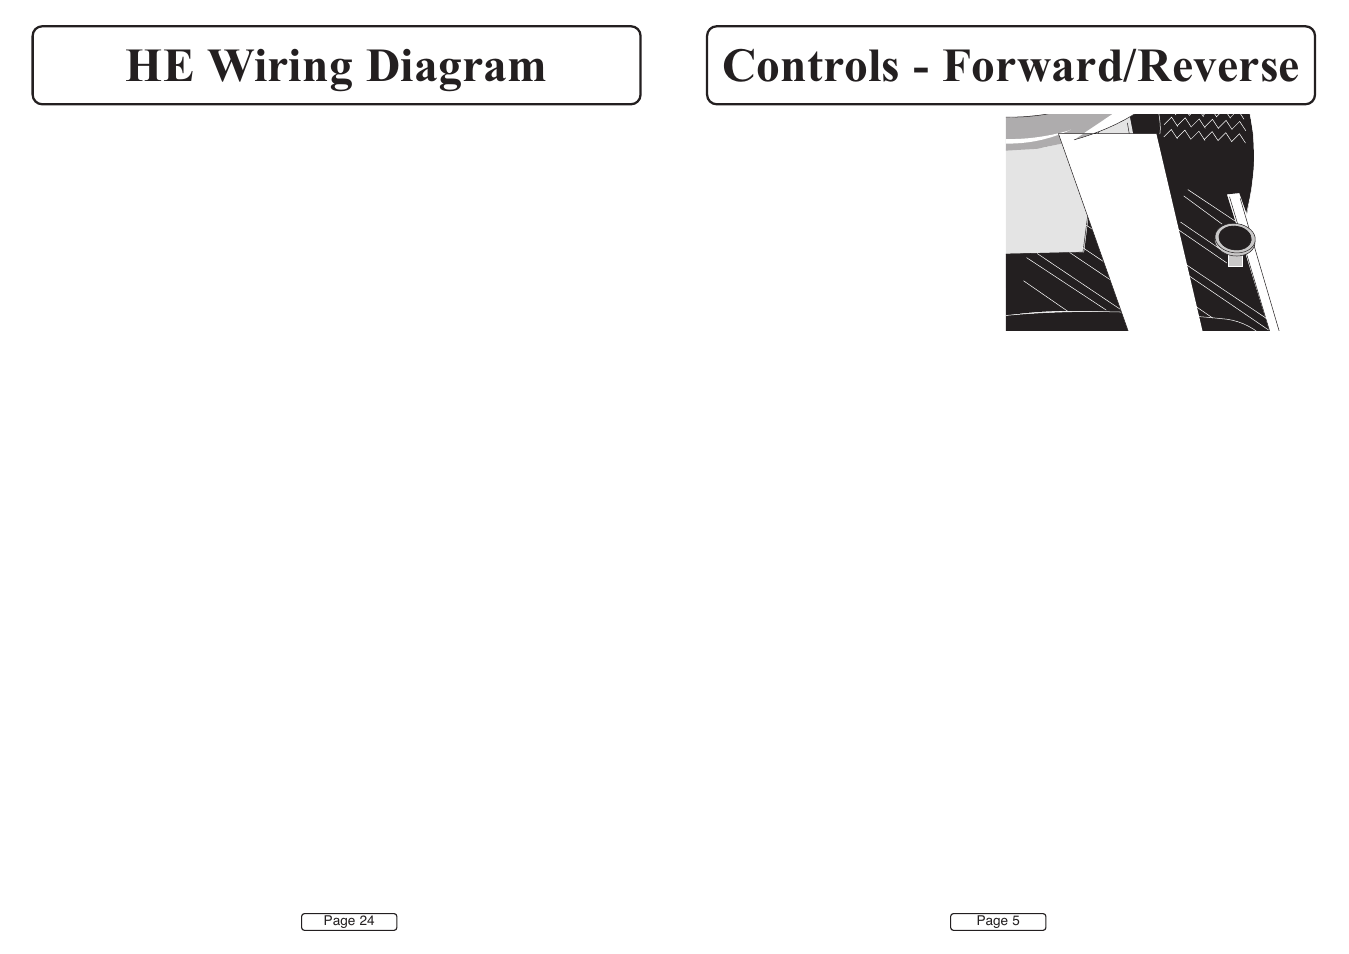 Controls forwardreverse he wiring diagram countax a50 user controls forwardreverse he wiring diagram countax a50 user manual page 5 cheapraybanclubmaster Images